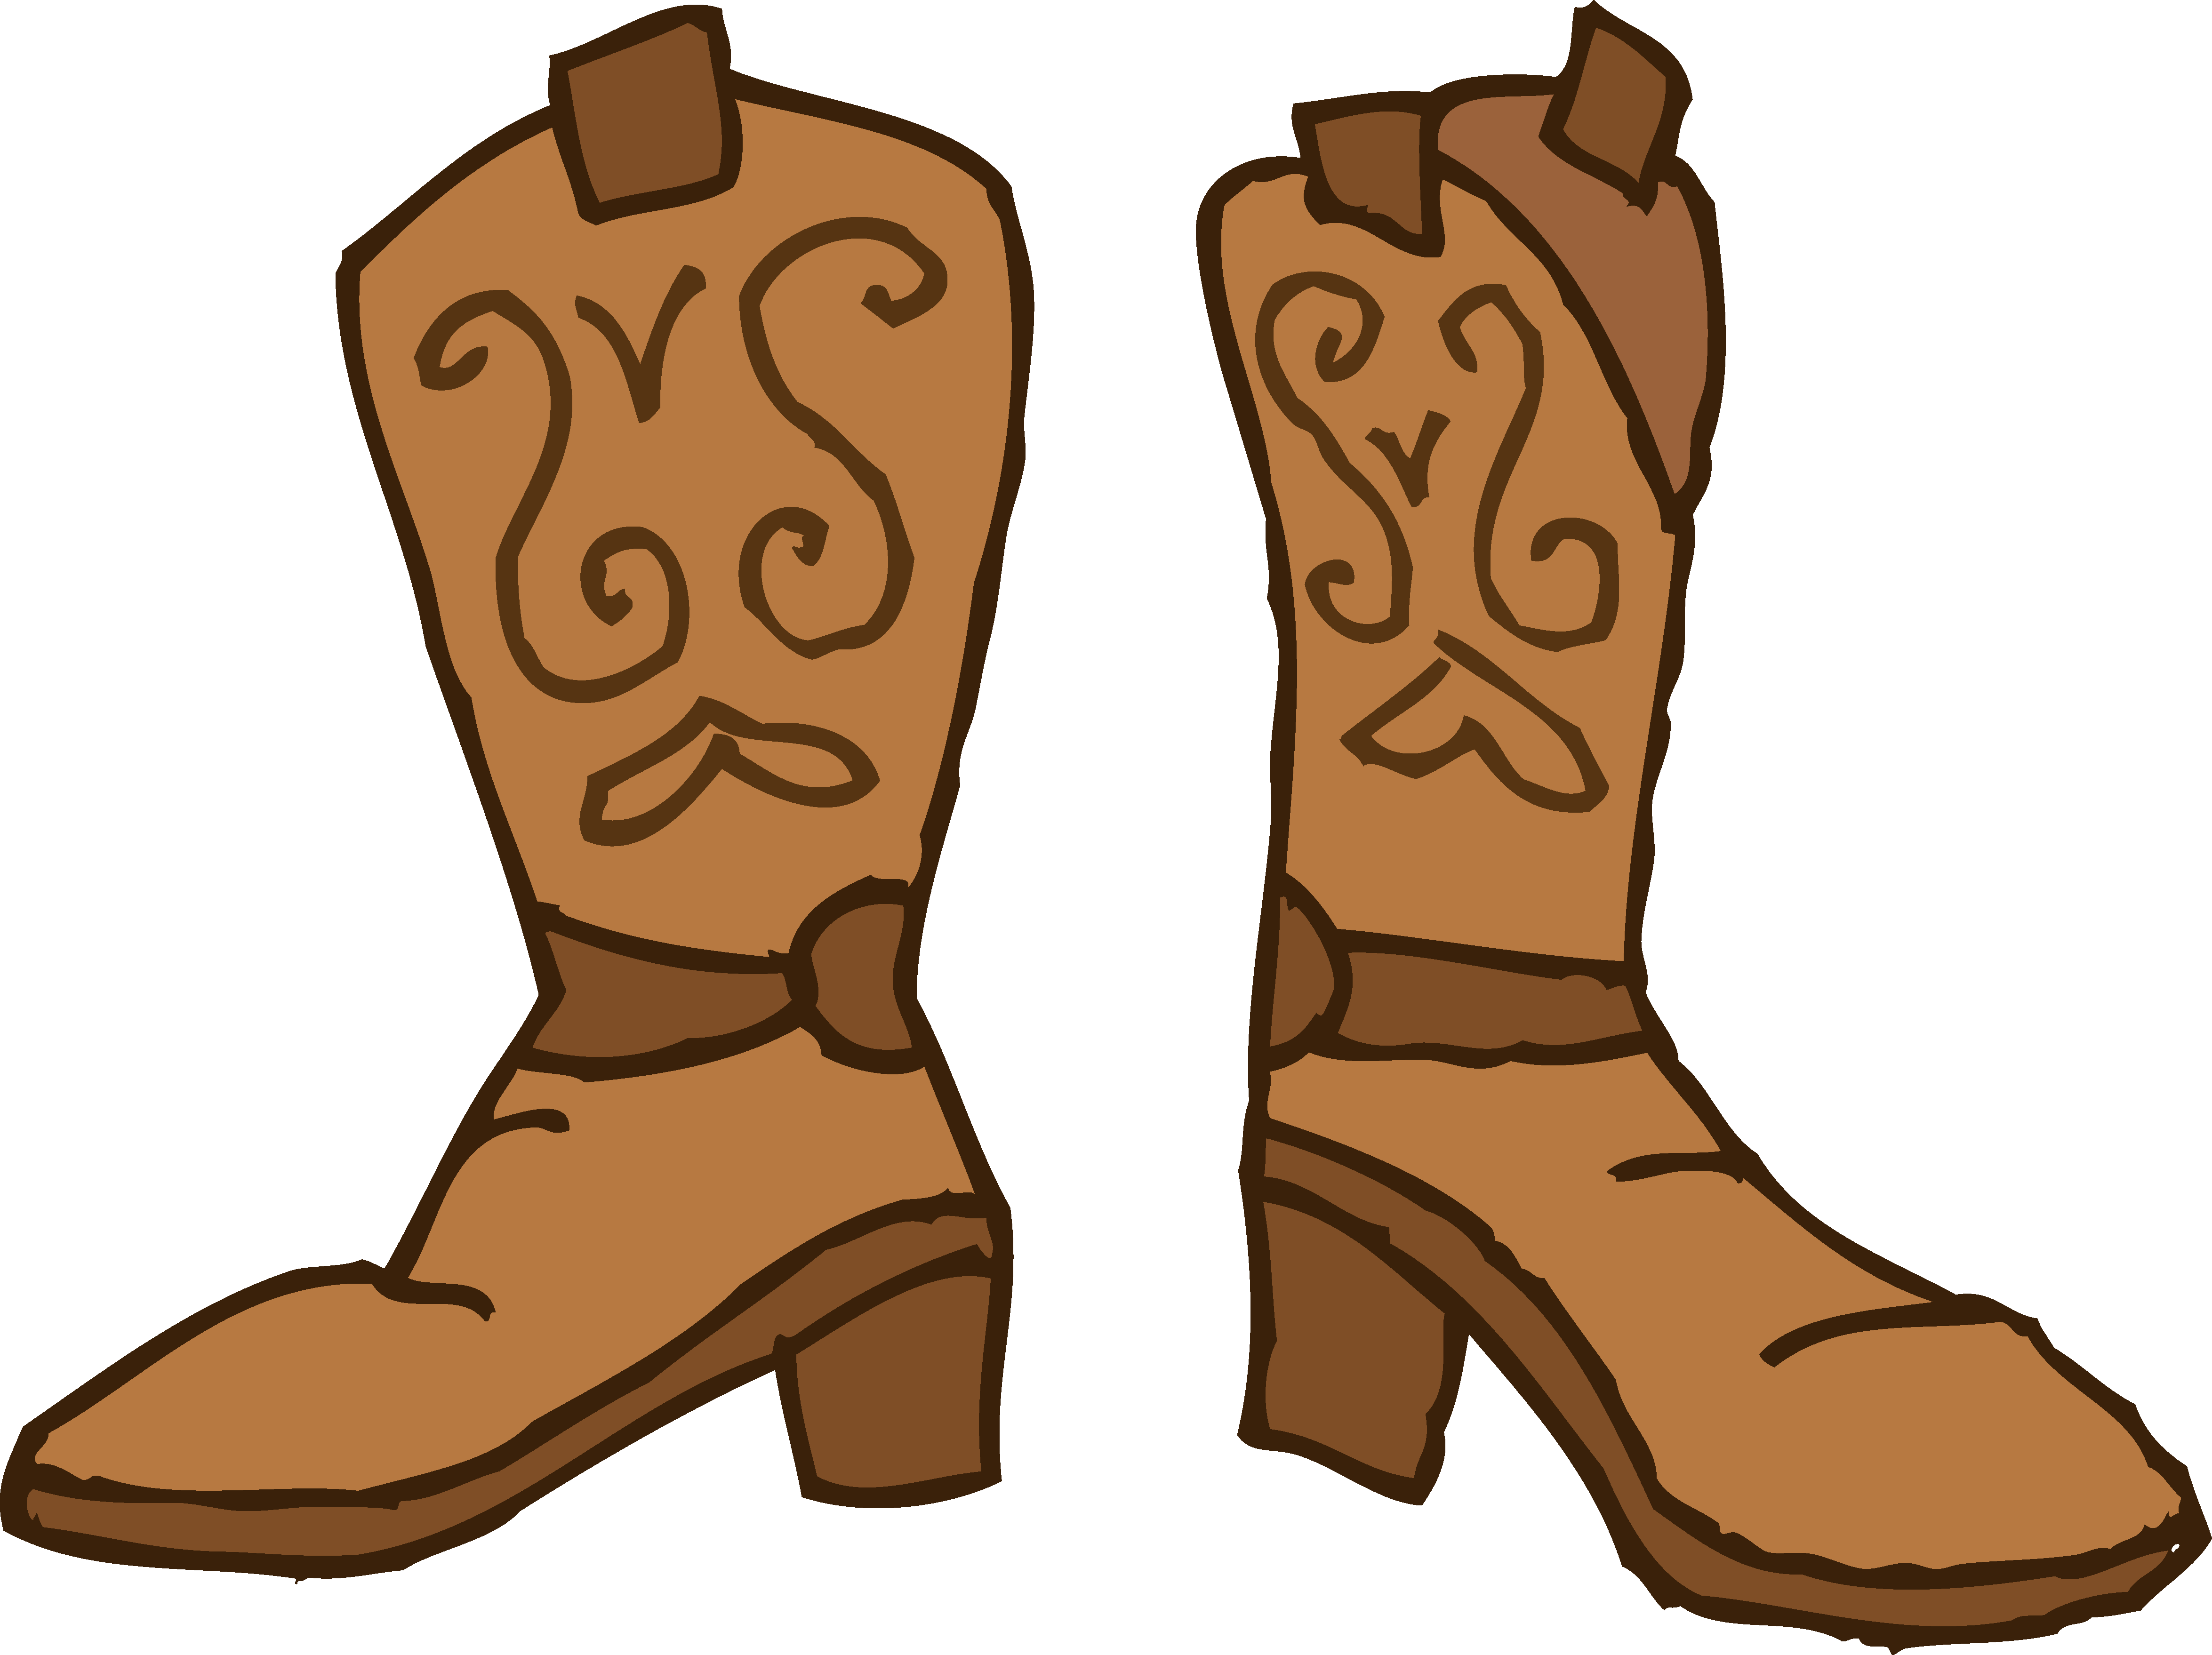 Cowboys star clipart png freeuse 28+ Collection of Cartoon Cowboy Boots Clipart | High quality, free ... png freeuse